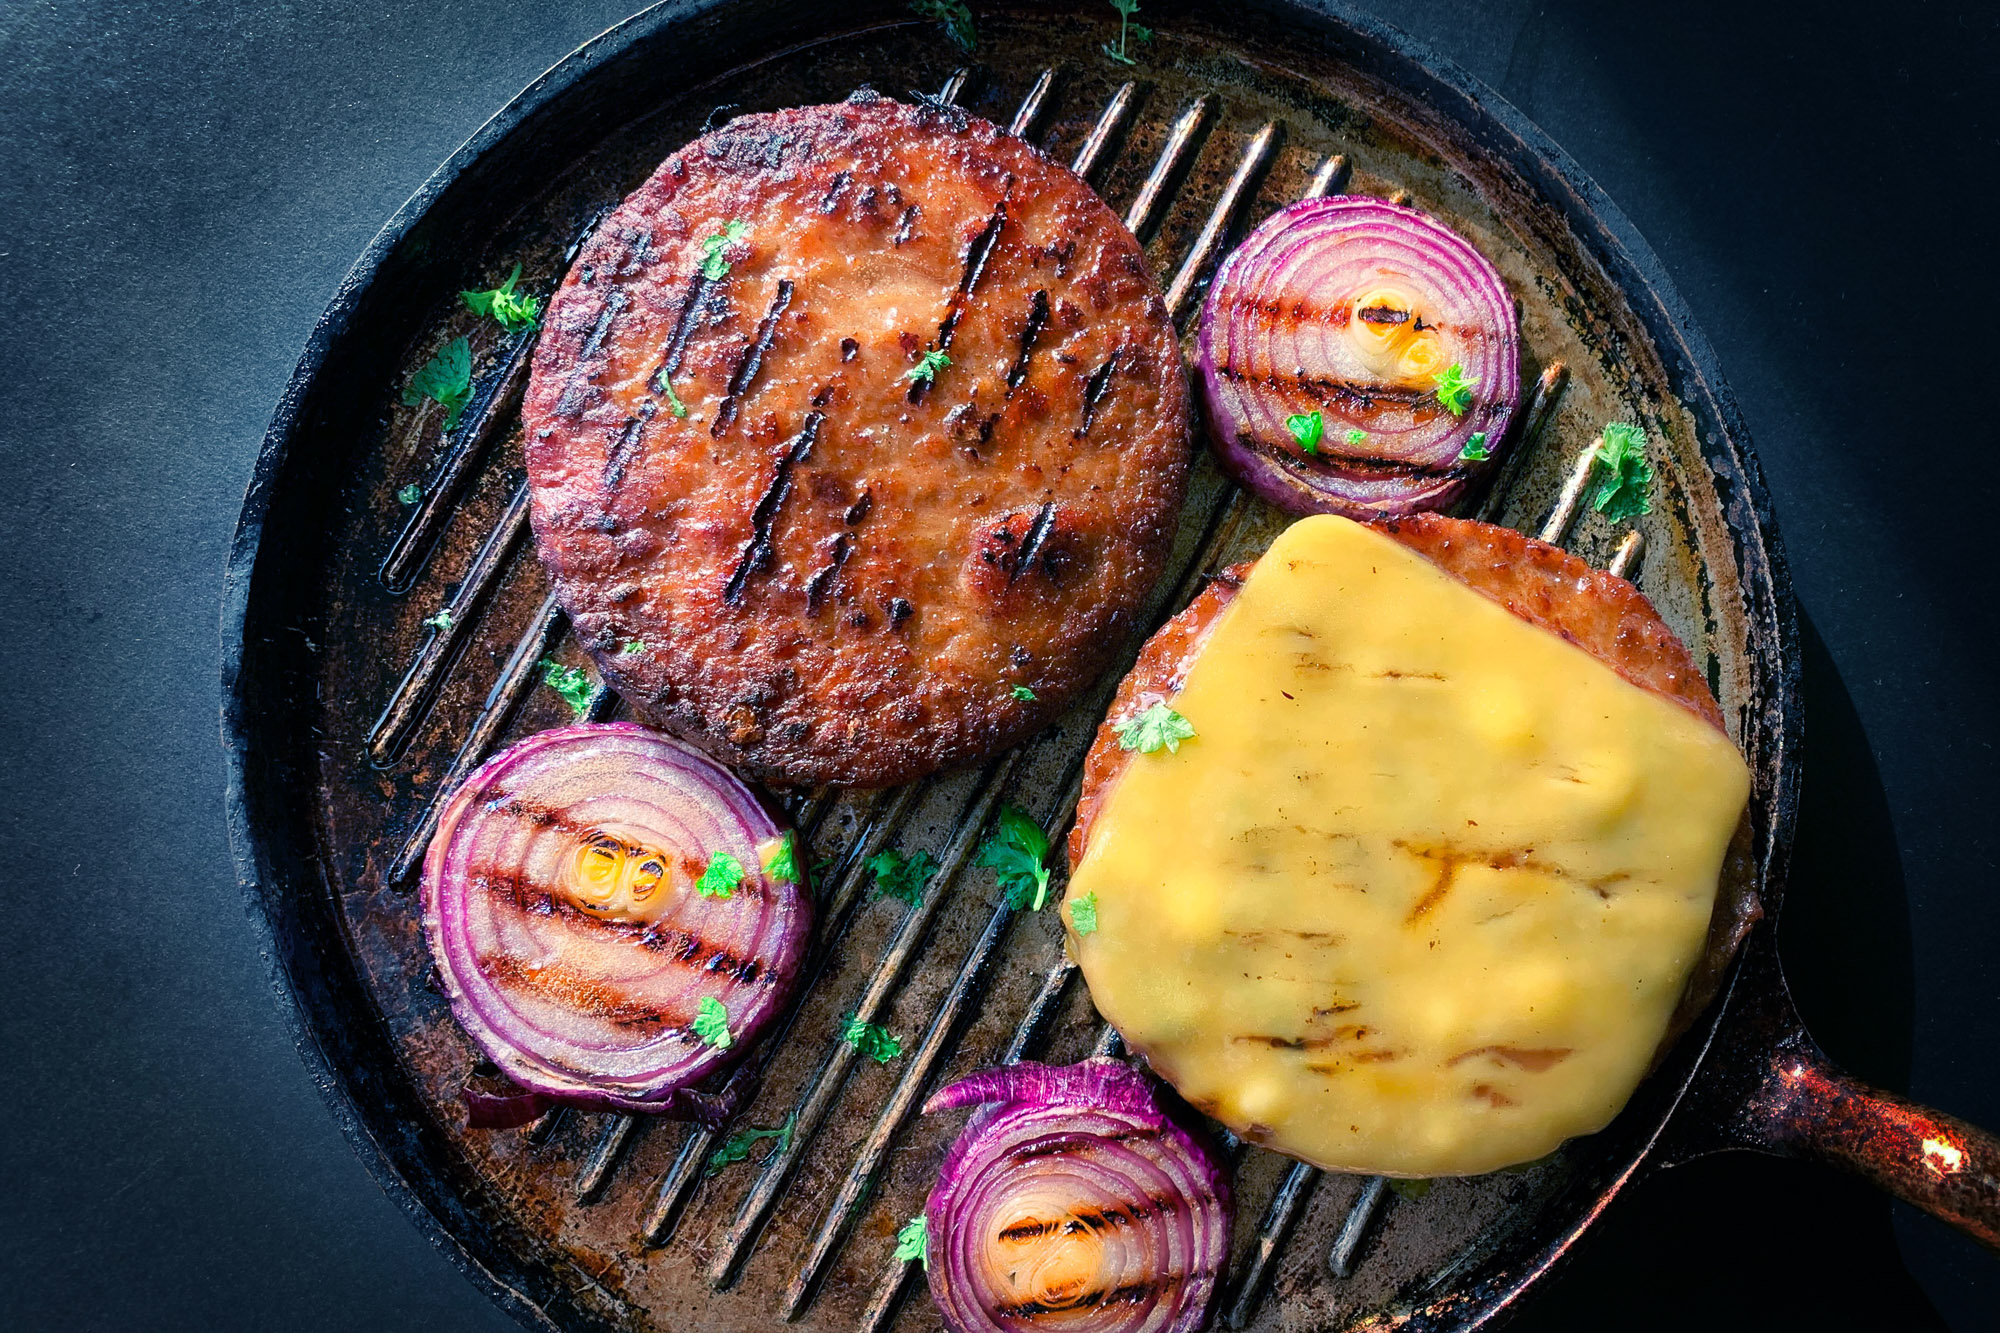 Plant based meat cooking in a cast iron grill